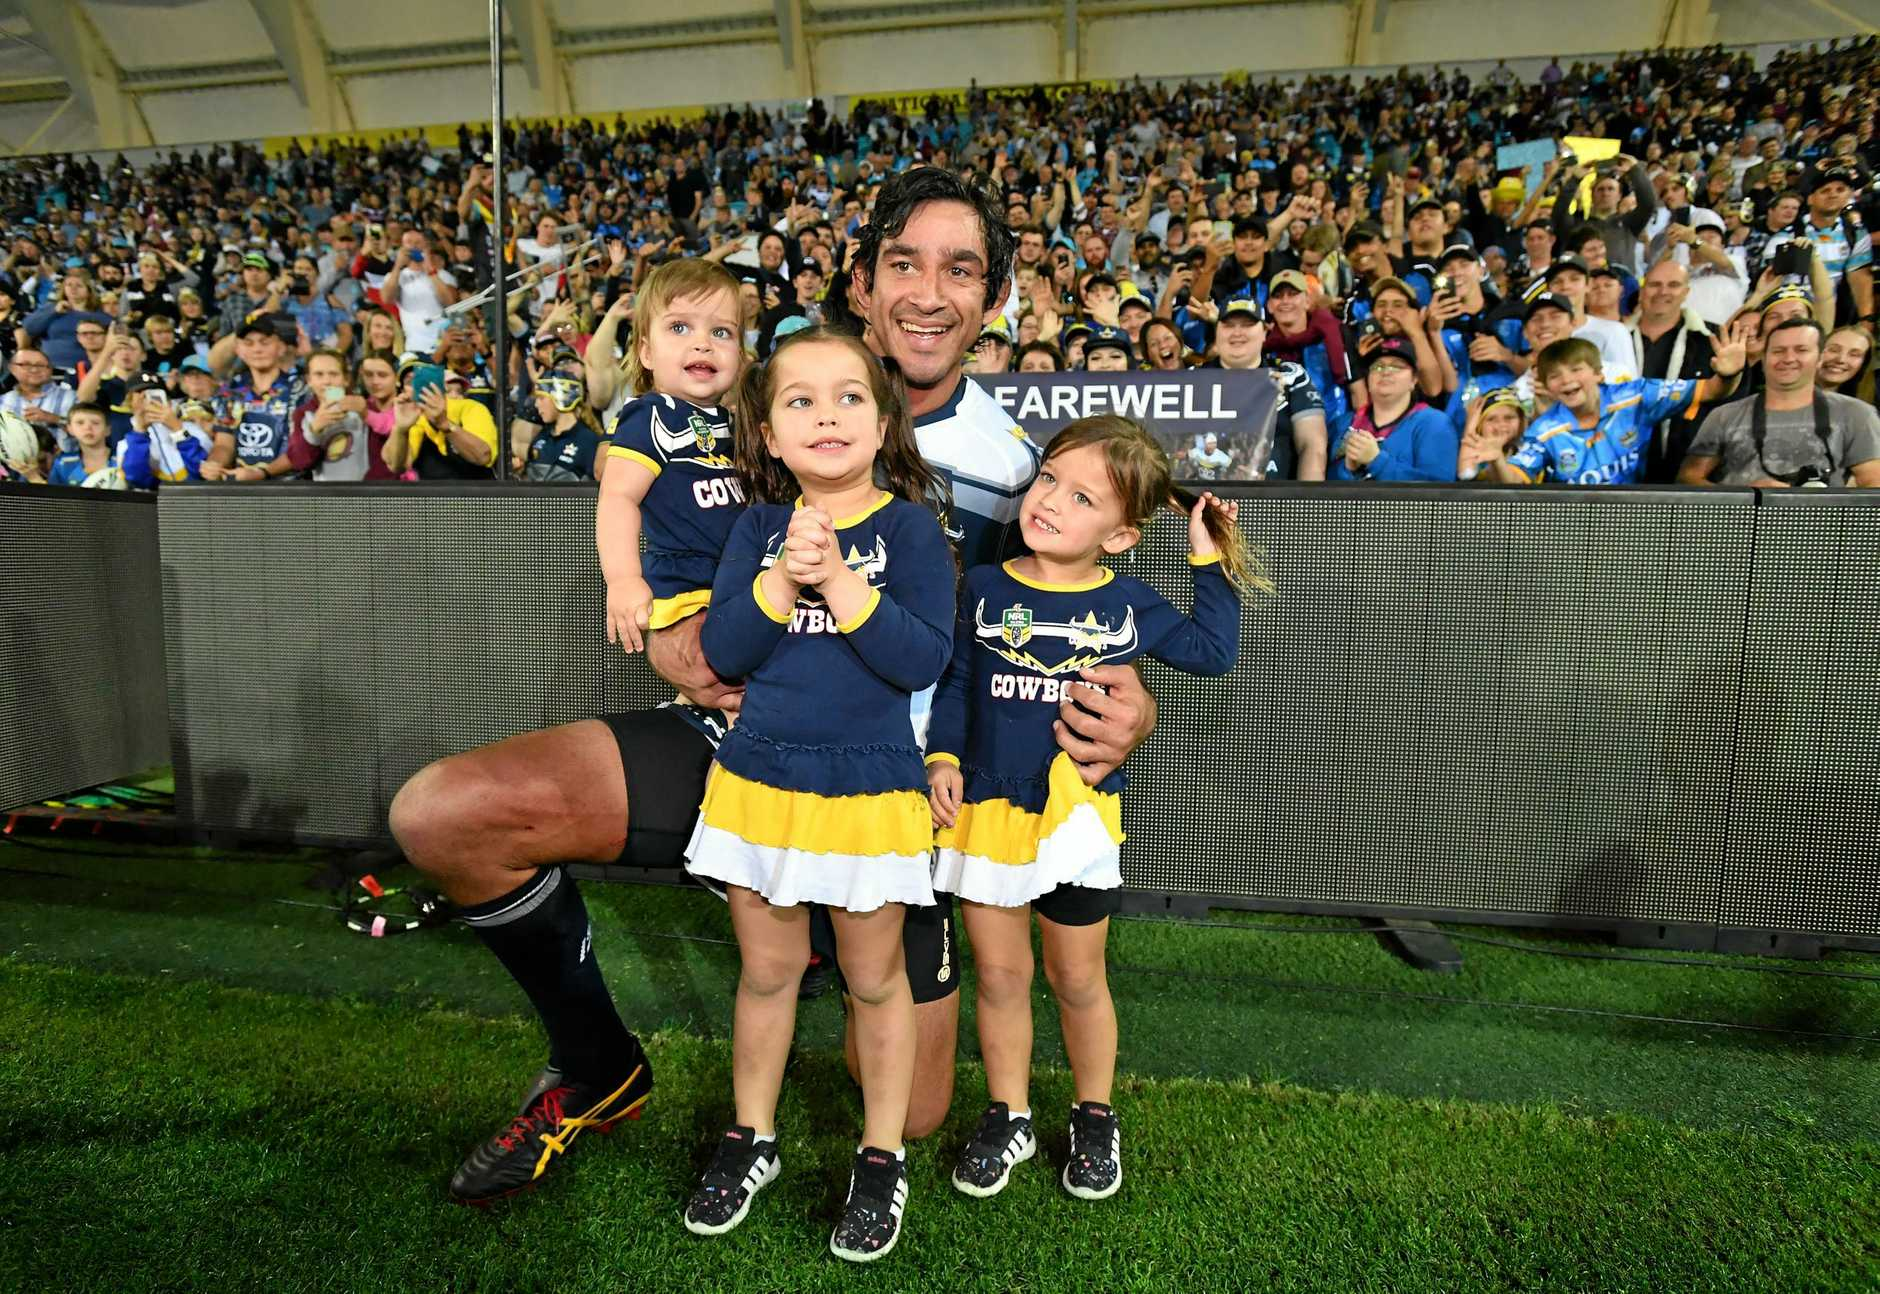 Johnathan Thurston of the Cowboys is seen with his children Lillie (left) Frankie (centre) and Charlie after playing his final NRL game during the Round 25 NRL match between the Gold Coast Titans and the North Queensland Cowboys at Cbus Super Stadium on the Gold Coast, Saturday, September 1, 2018. (AAP Image/Darren England) NO ARCHIVING, EDITORIAL USE ONLY